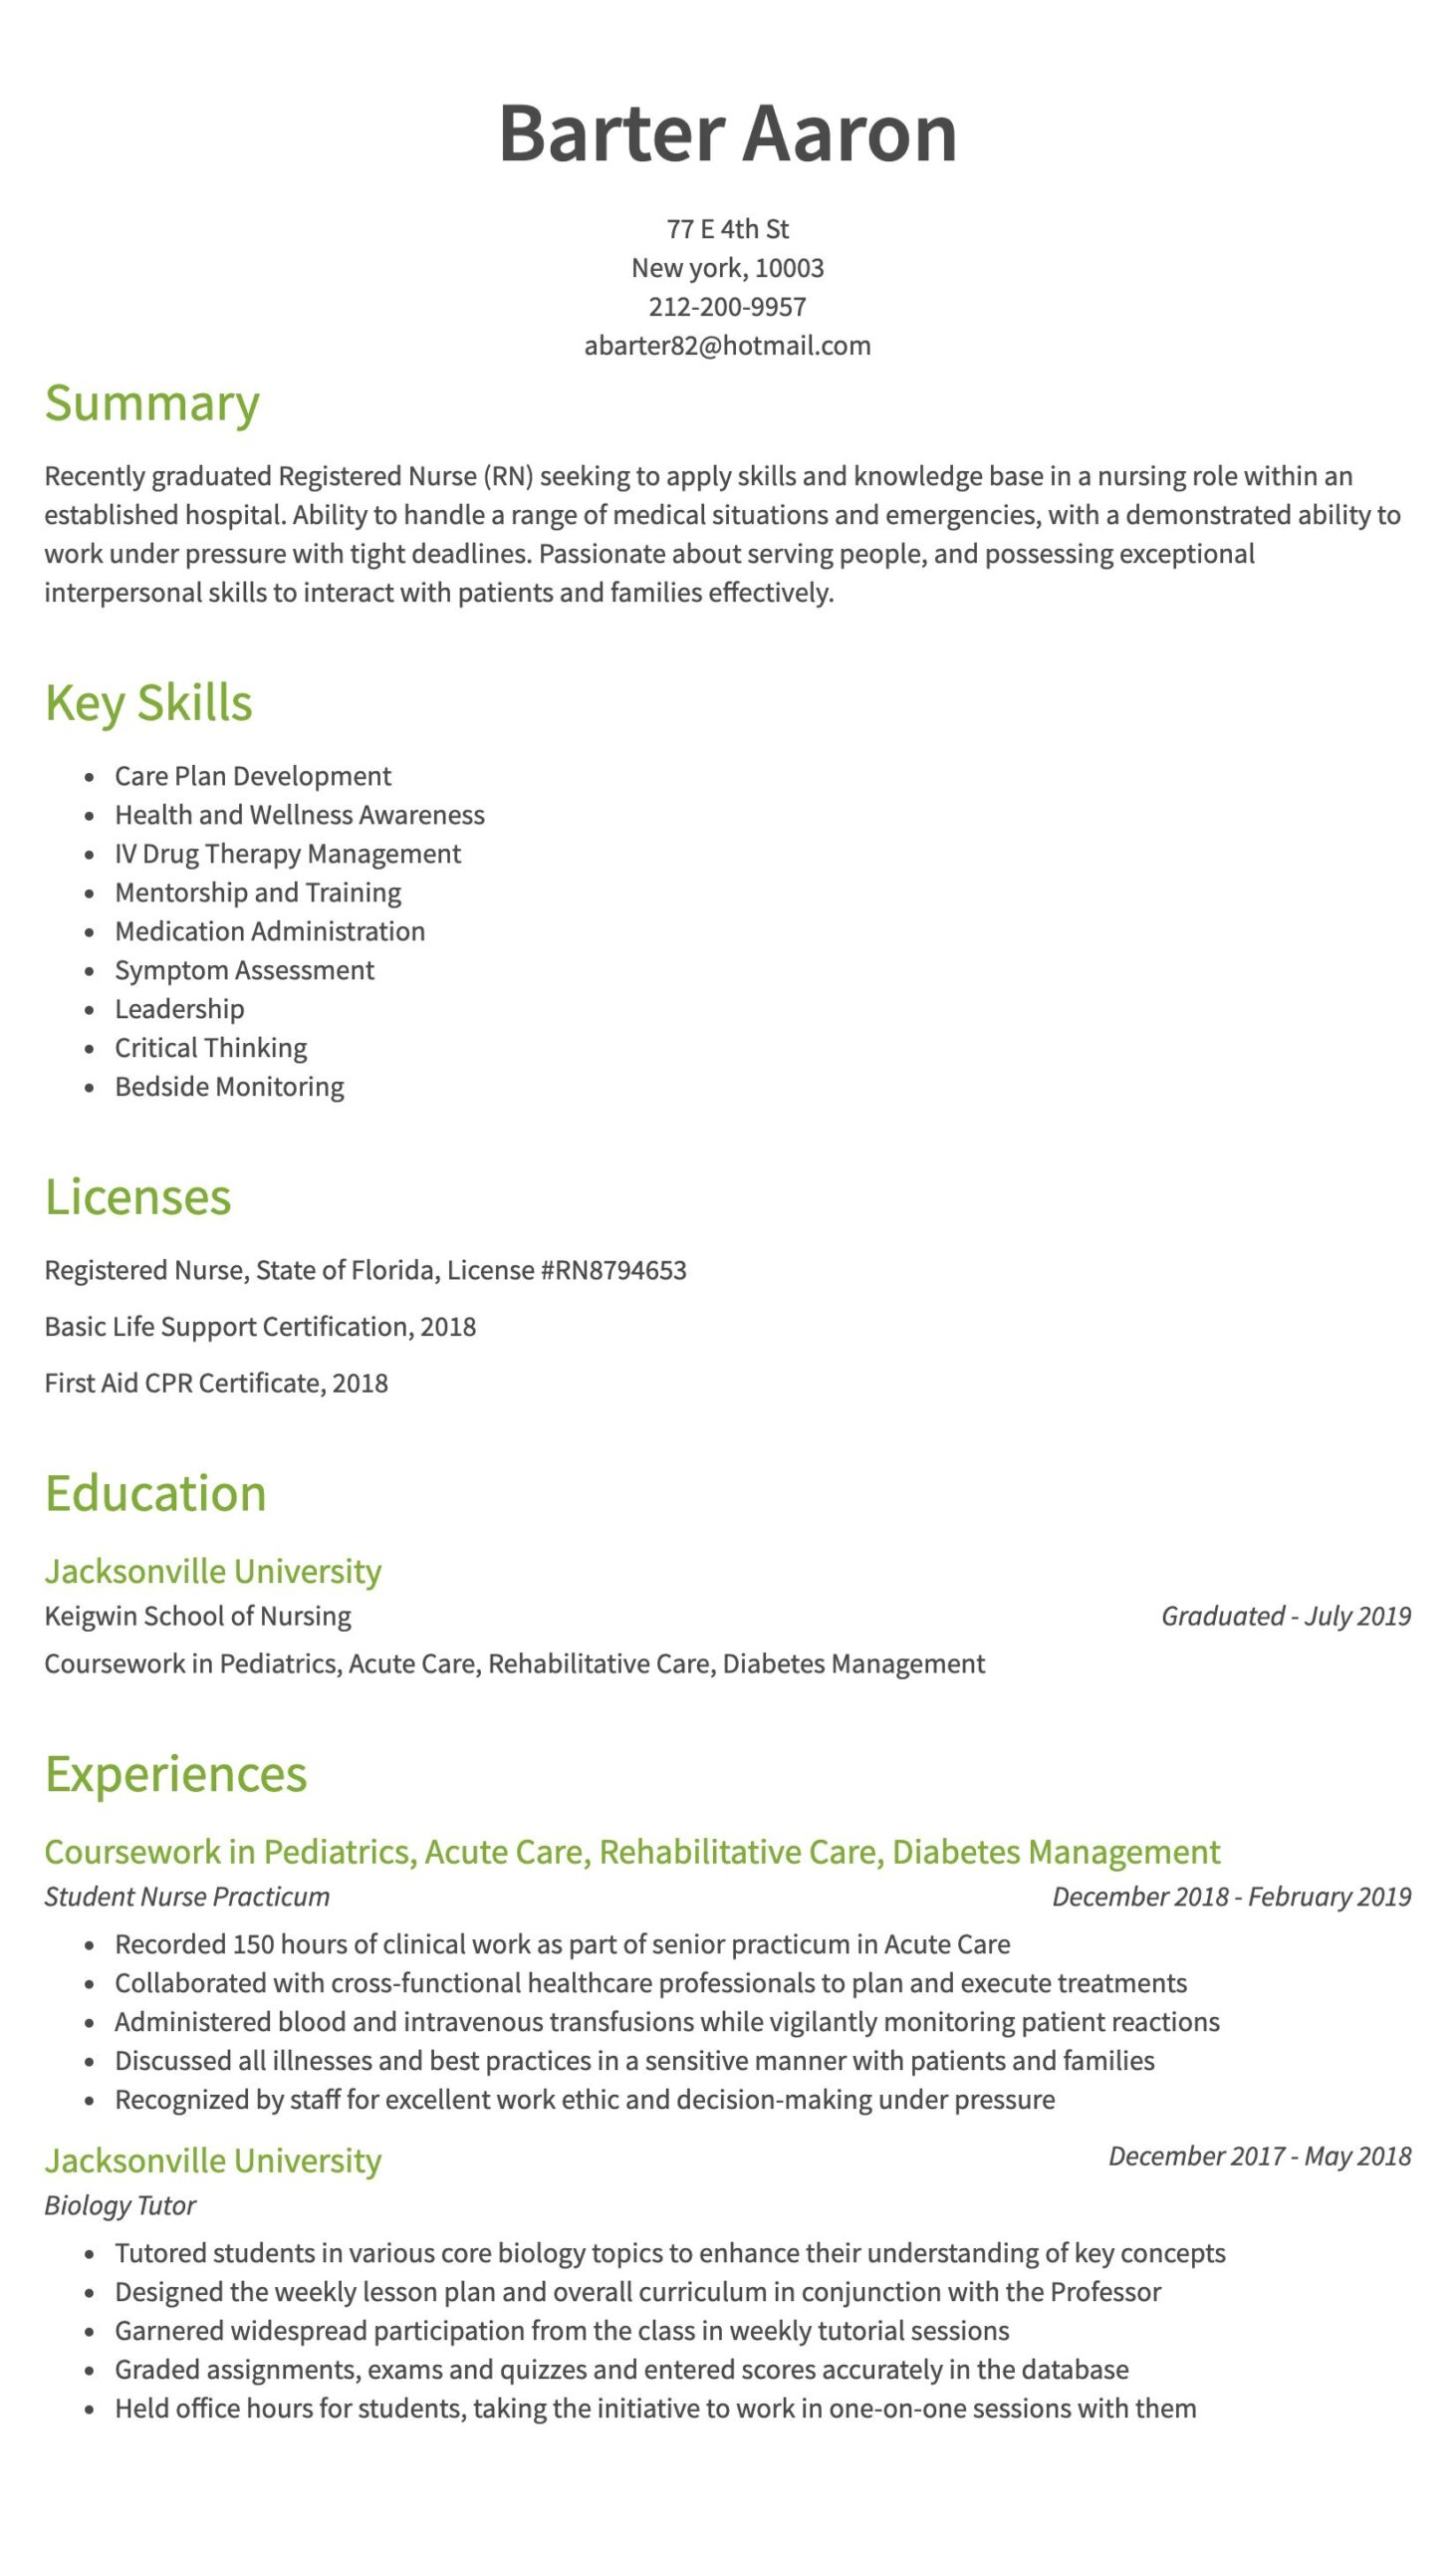 nursing resume examples samples written by rn managers new sample years of exp lil tjay Resume New Rn Resume Sample